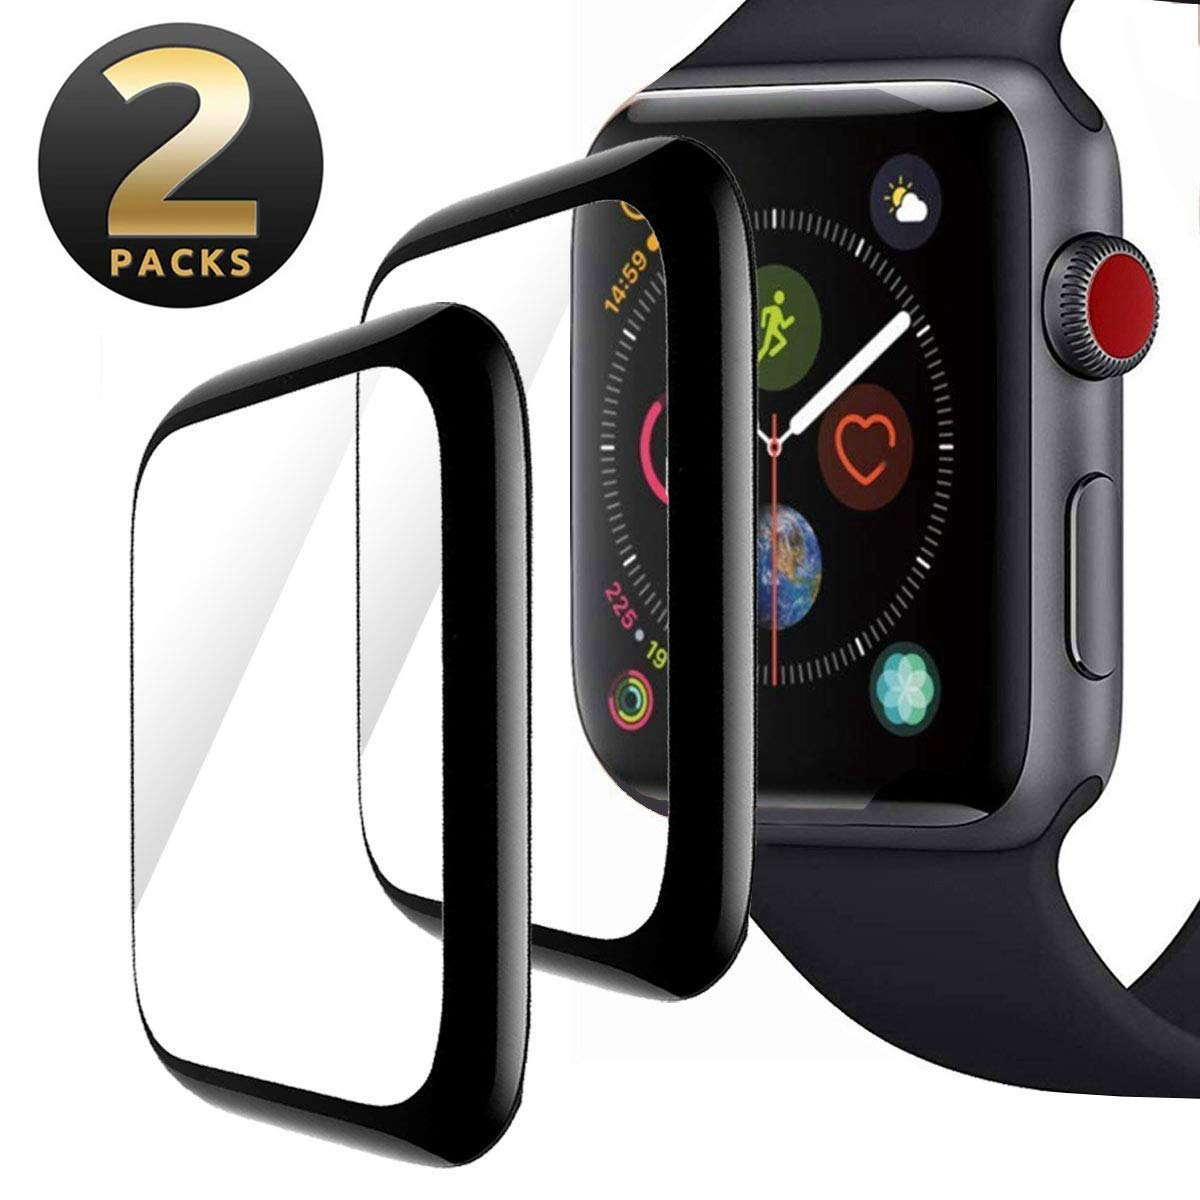 [2 - Pack] Screen Protector for Apple Watch 42mm,Anti-Smudge Anti-Scratch Bubble-Free Full Coverage 9H Hardness Tempered Glass Film for iWatch 42mm Series 3/2/1 by ZJSSMART